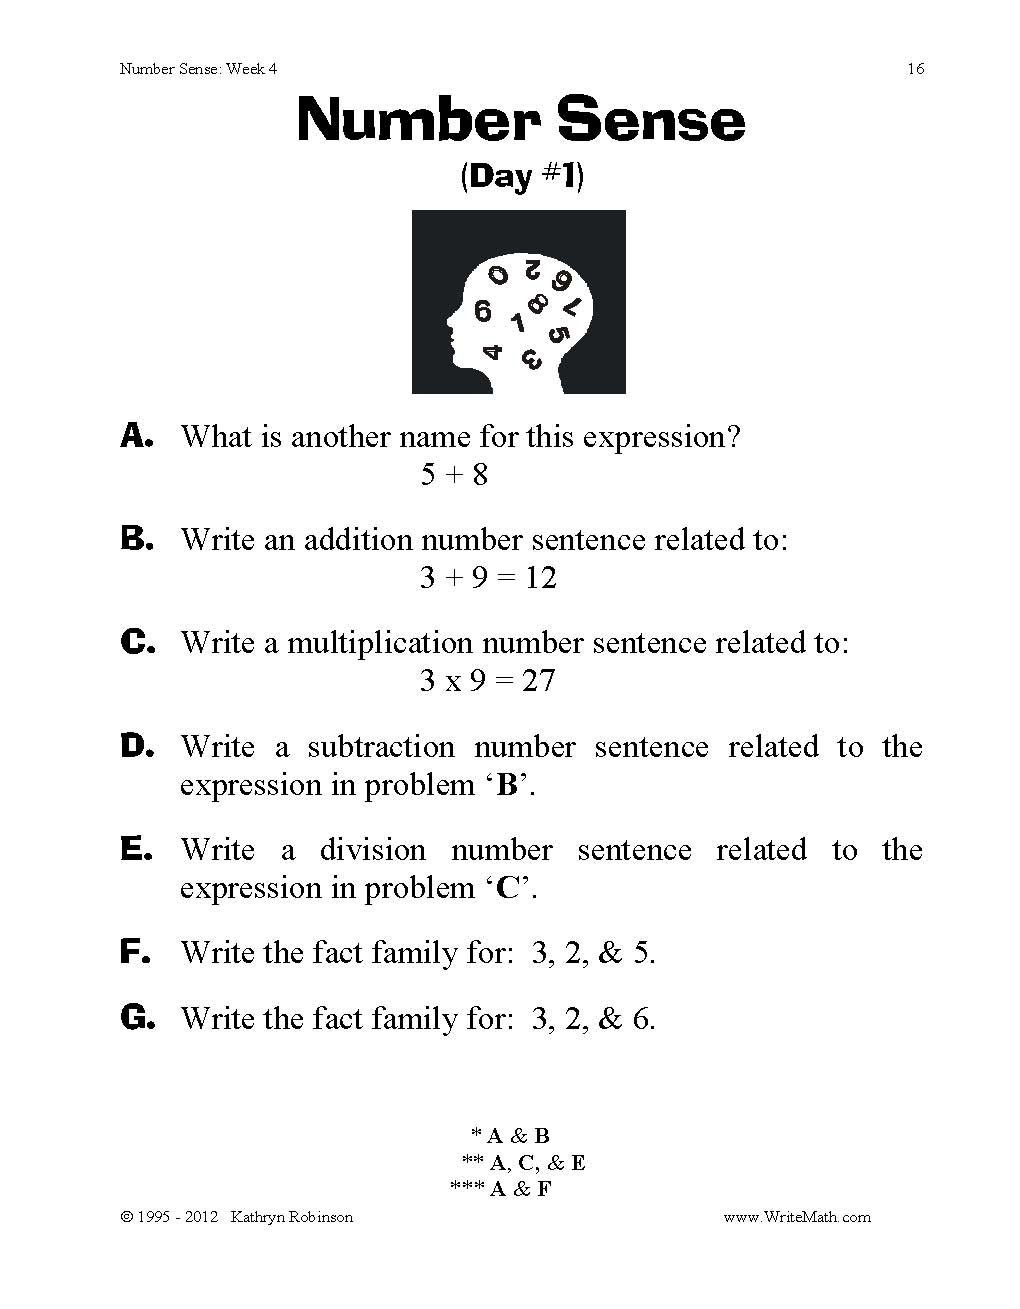 Probability Worksheet 4th Grade Math Kg2 Train Timetable Worksheets Number Sense Worksheets